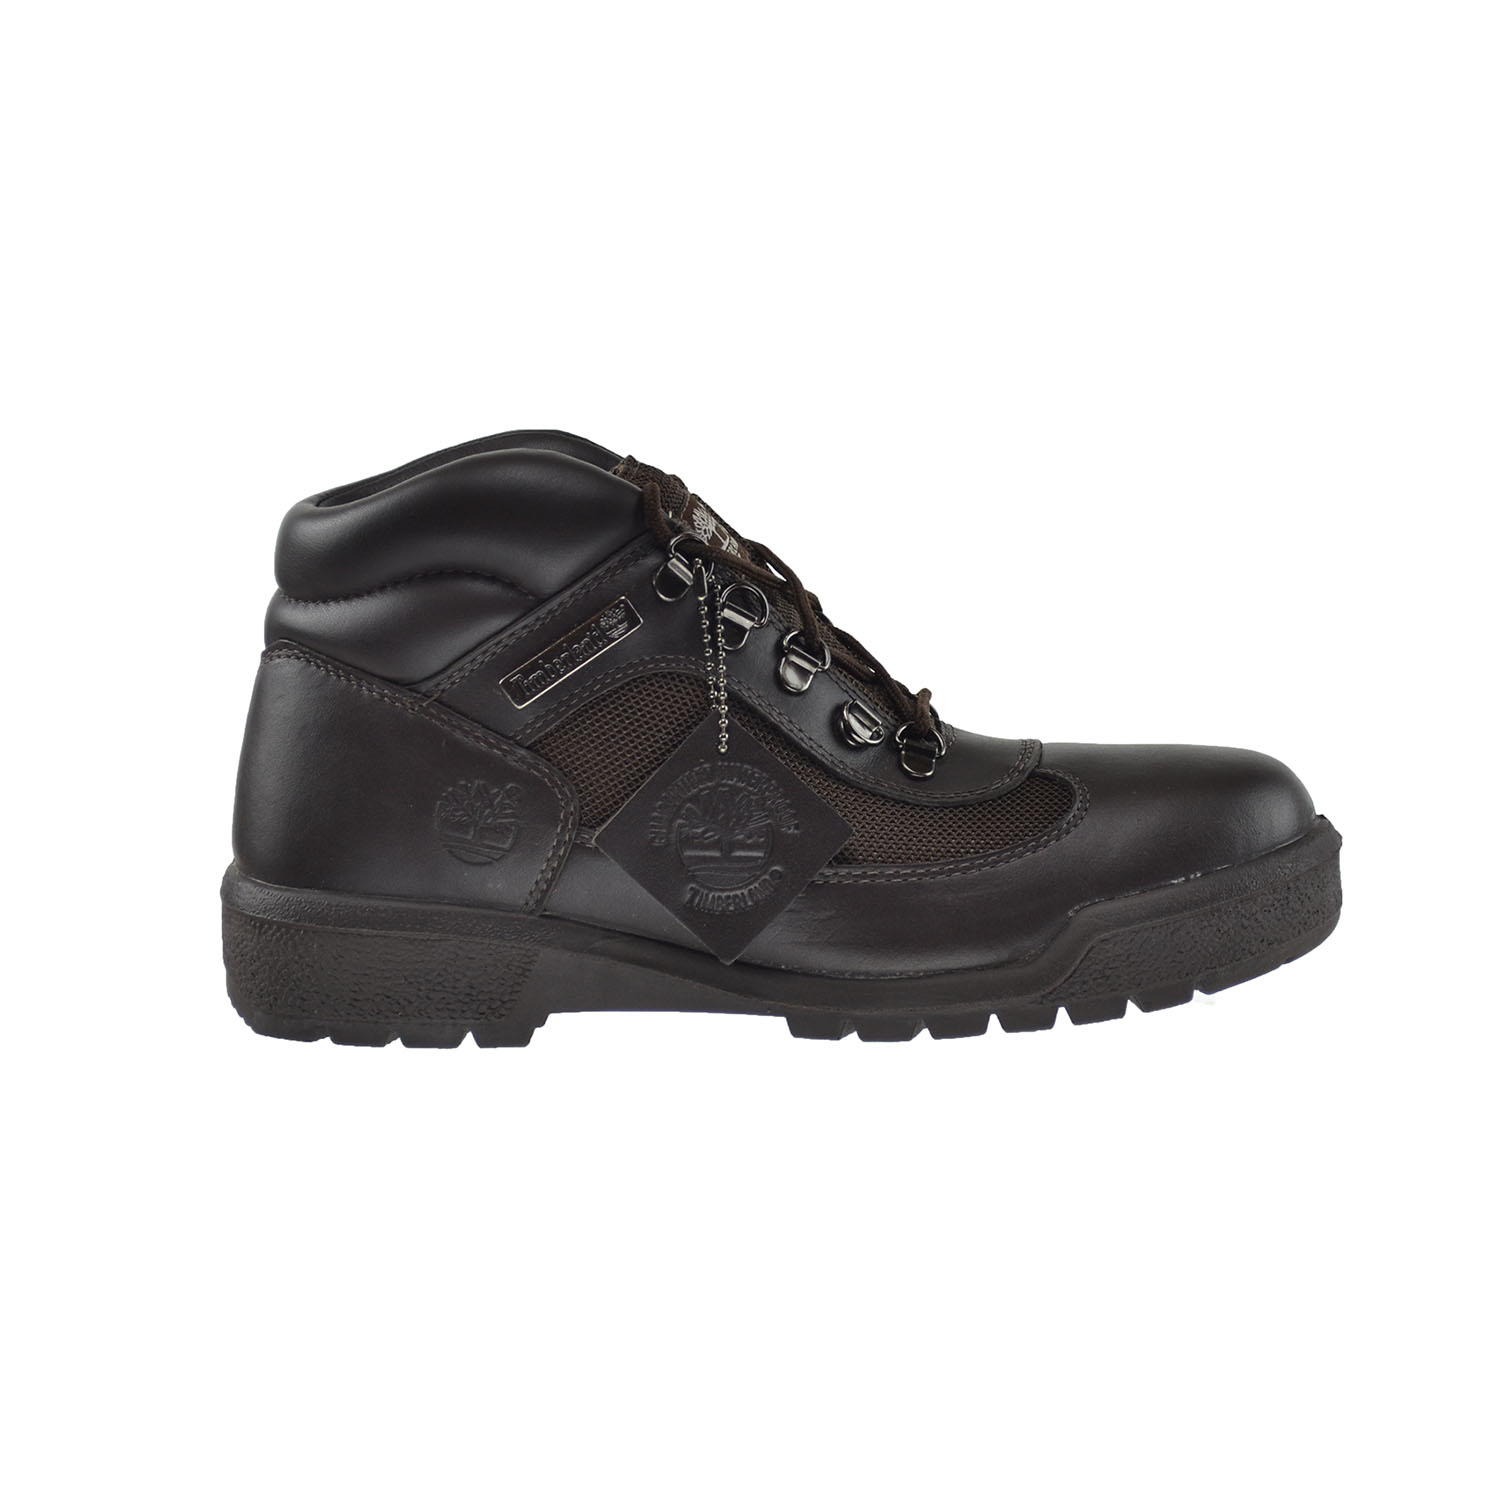 Timberland Men's Field Boots Brown 15592 by Timberland